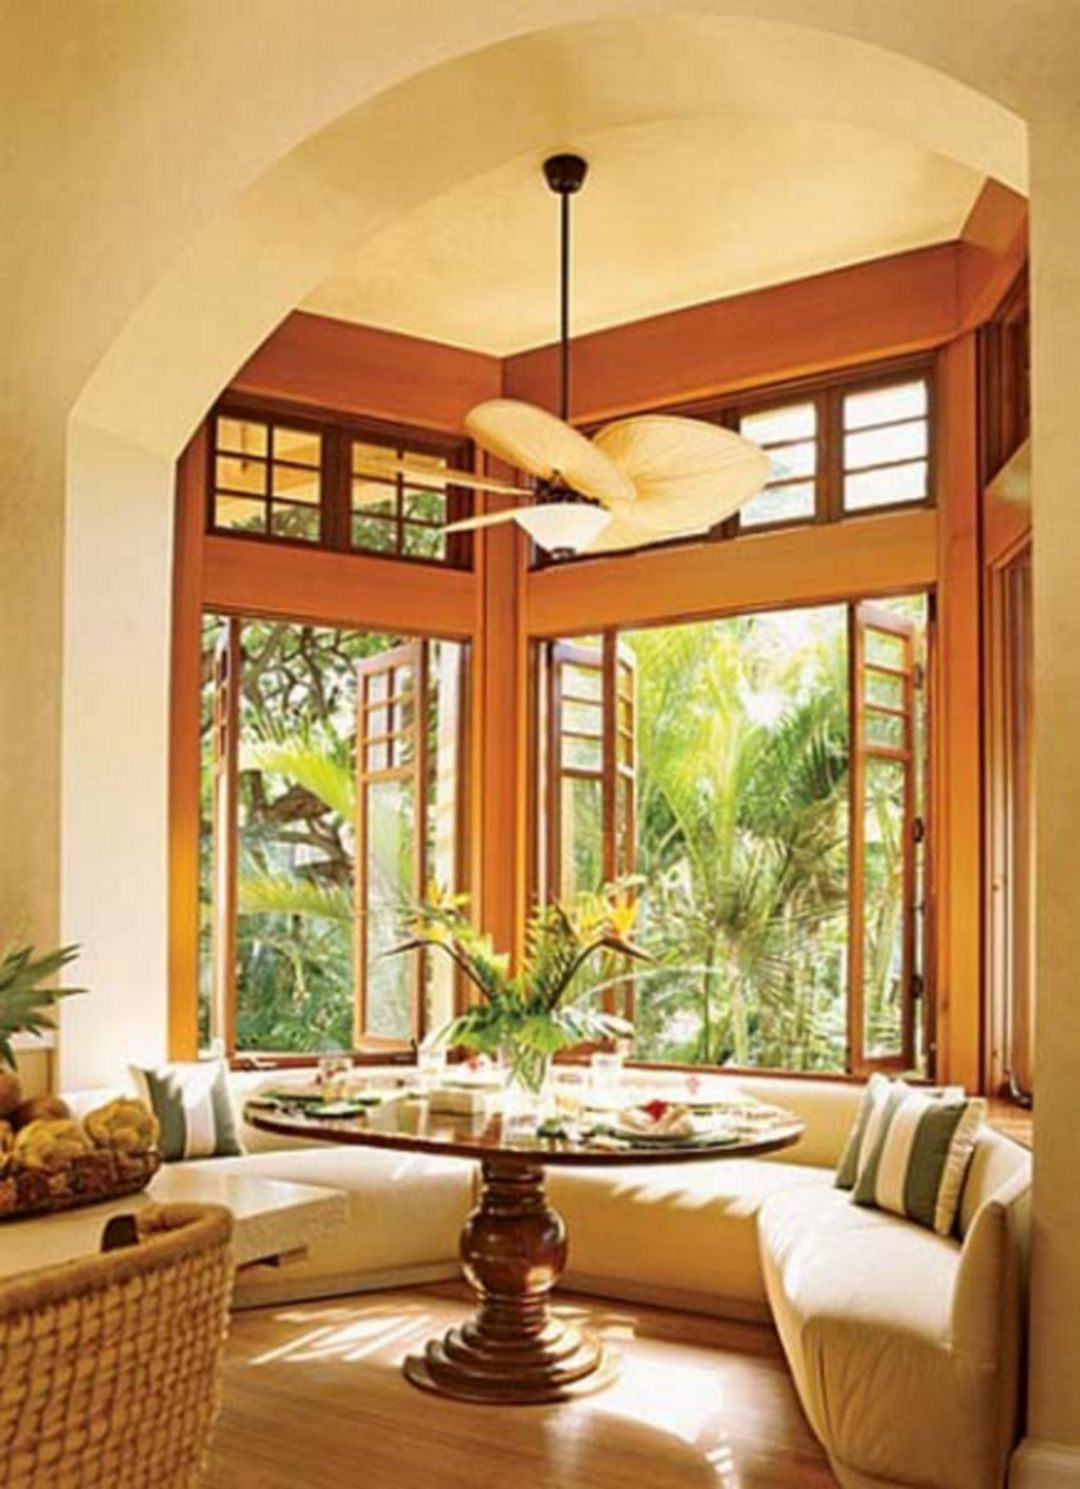 25+ Beautiful Hawaiian Home Decorating Ideas That Will Make Your Home Amazing